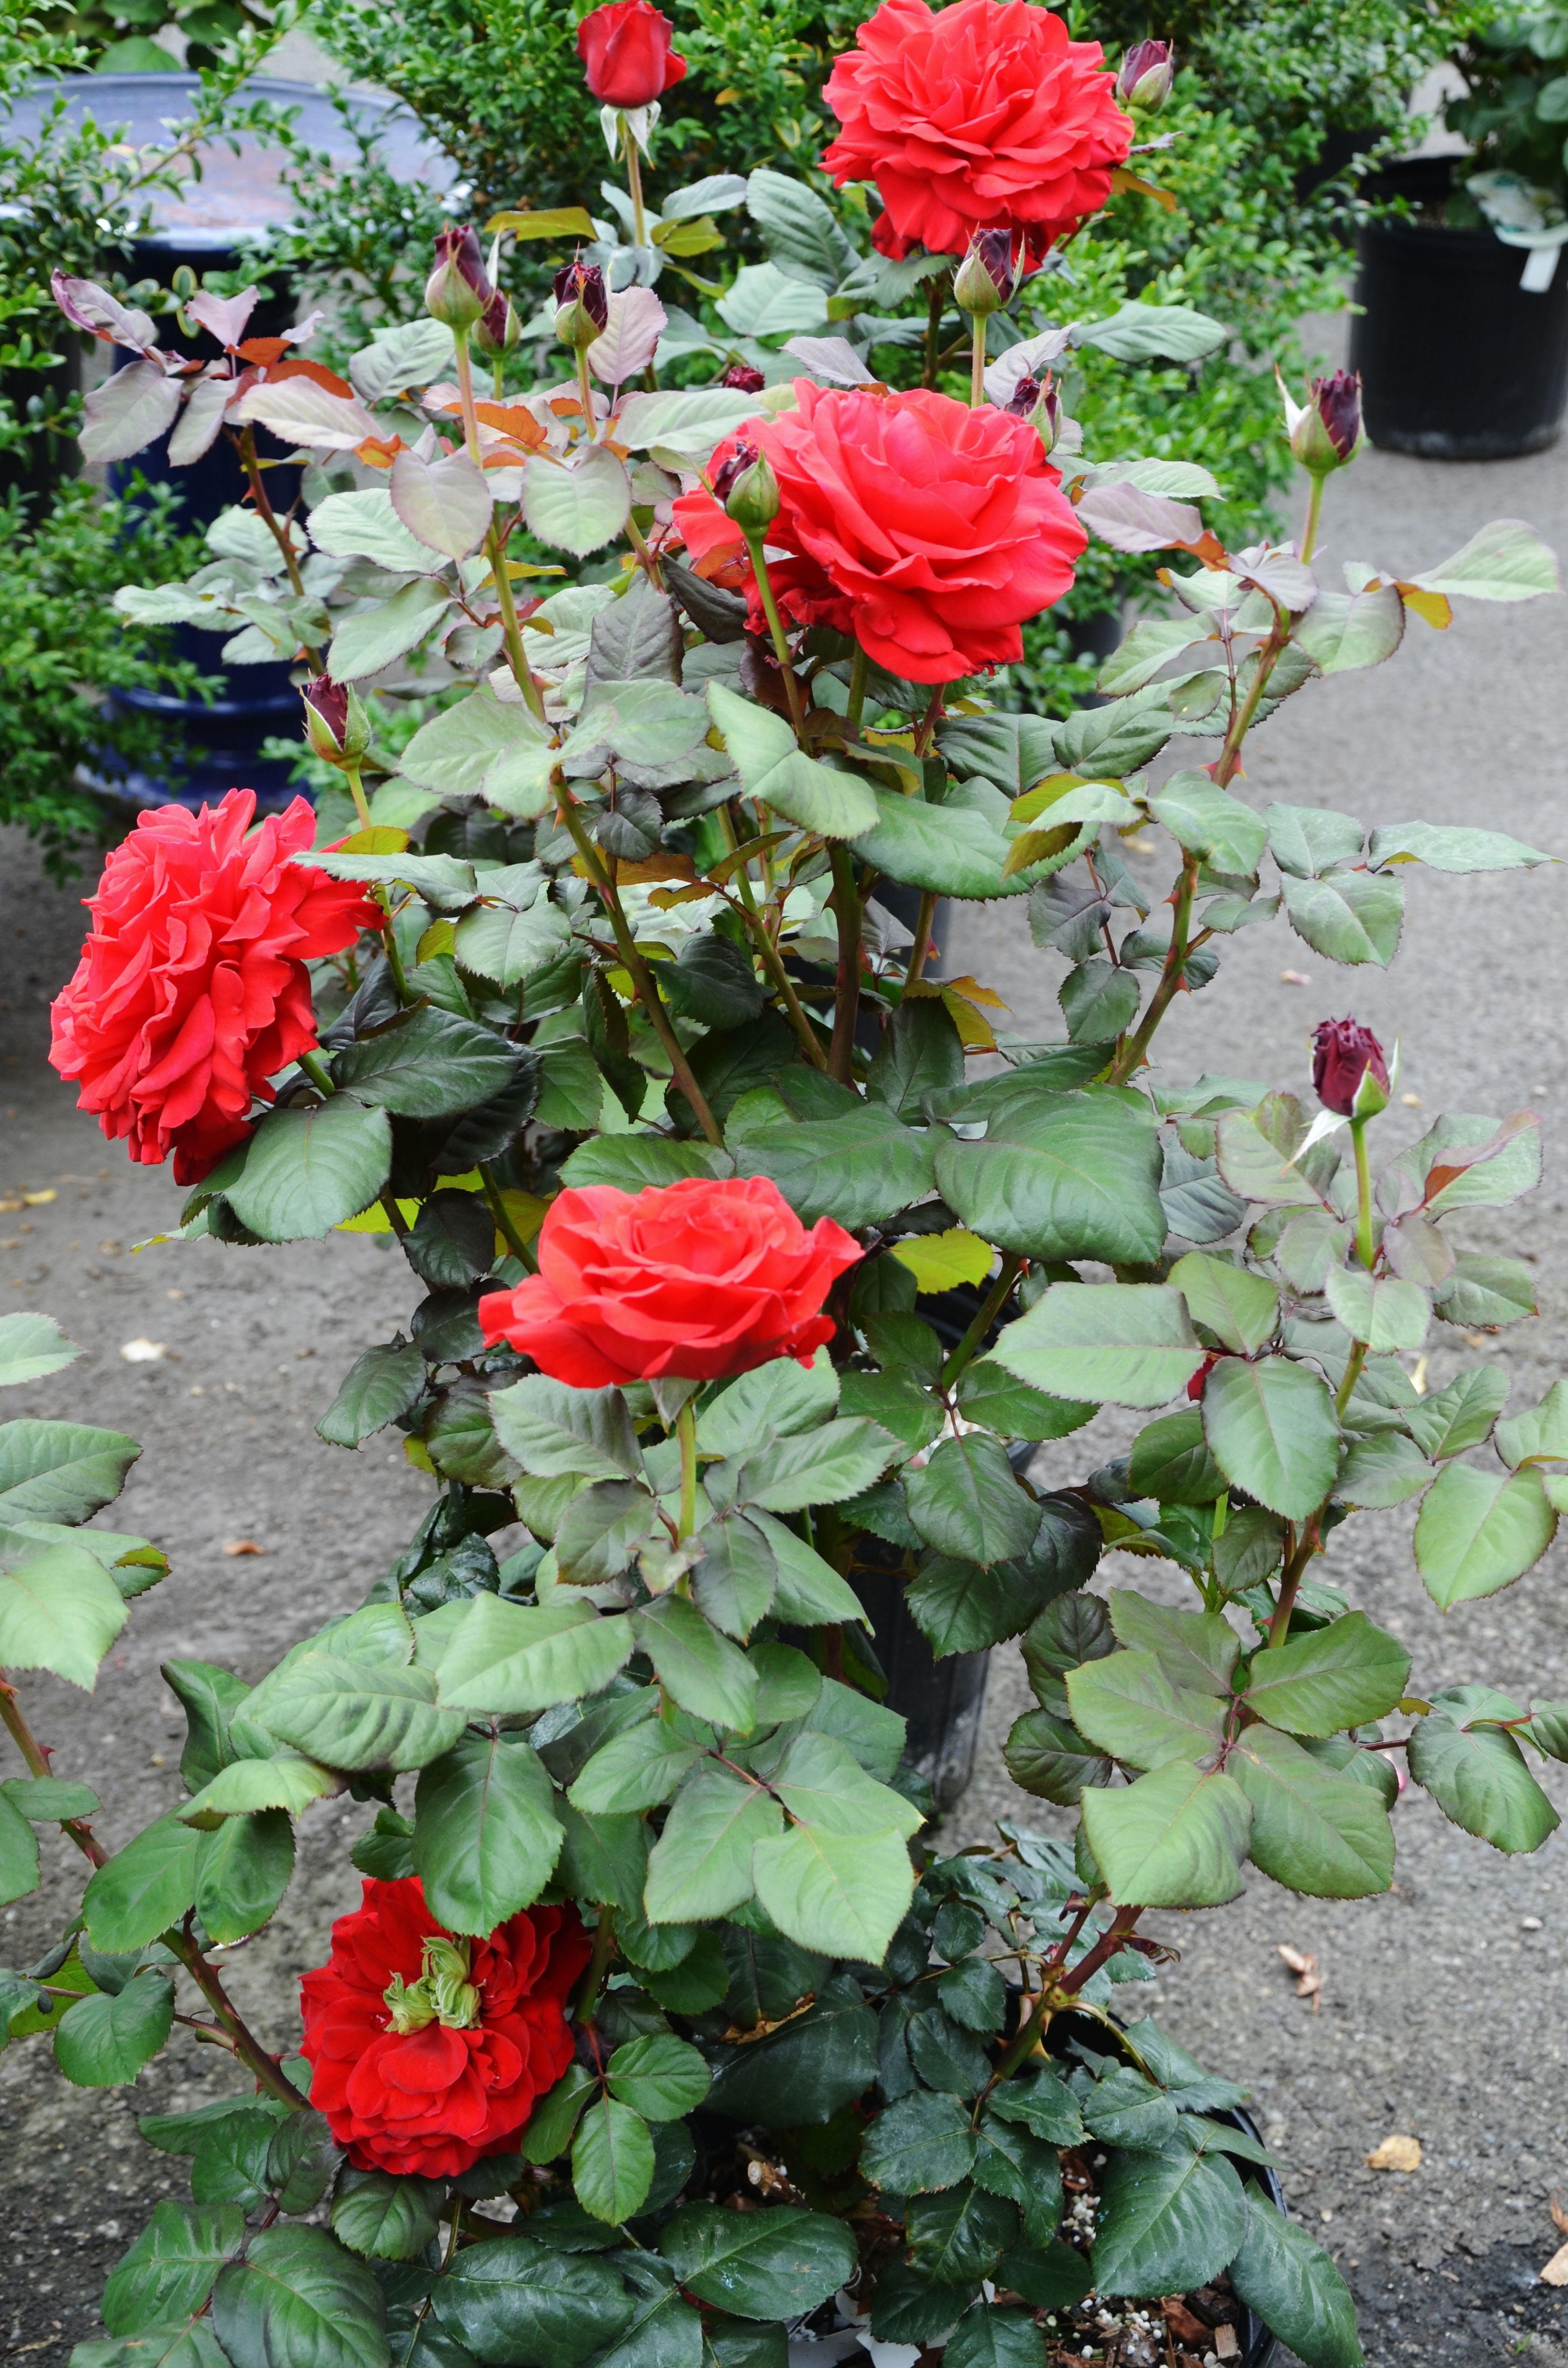 How to trim a rose bush - Rose Care 101 Even Though They Pretty Much Seem To Take Care Of I Want A Red Rose Bush With Huge Roses On It